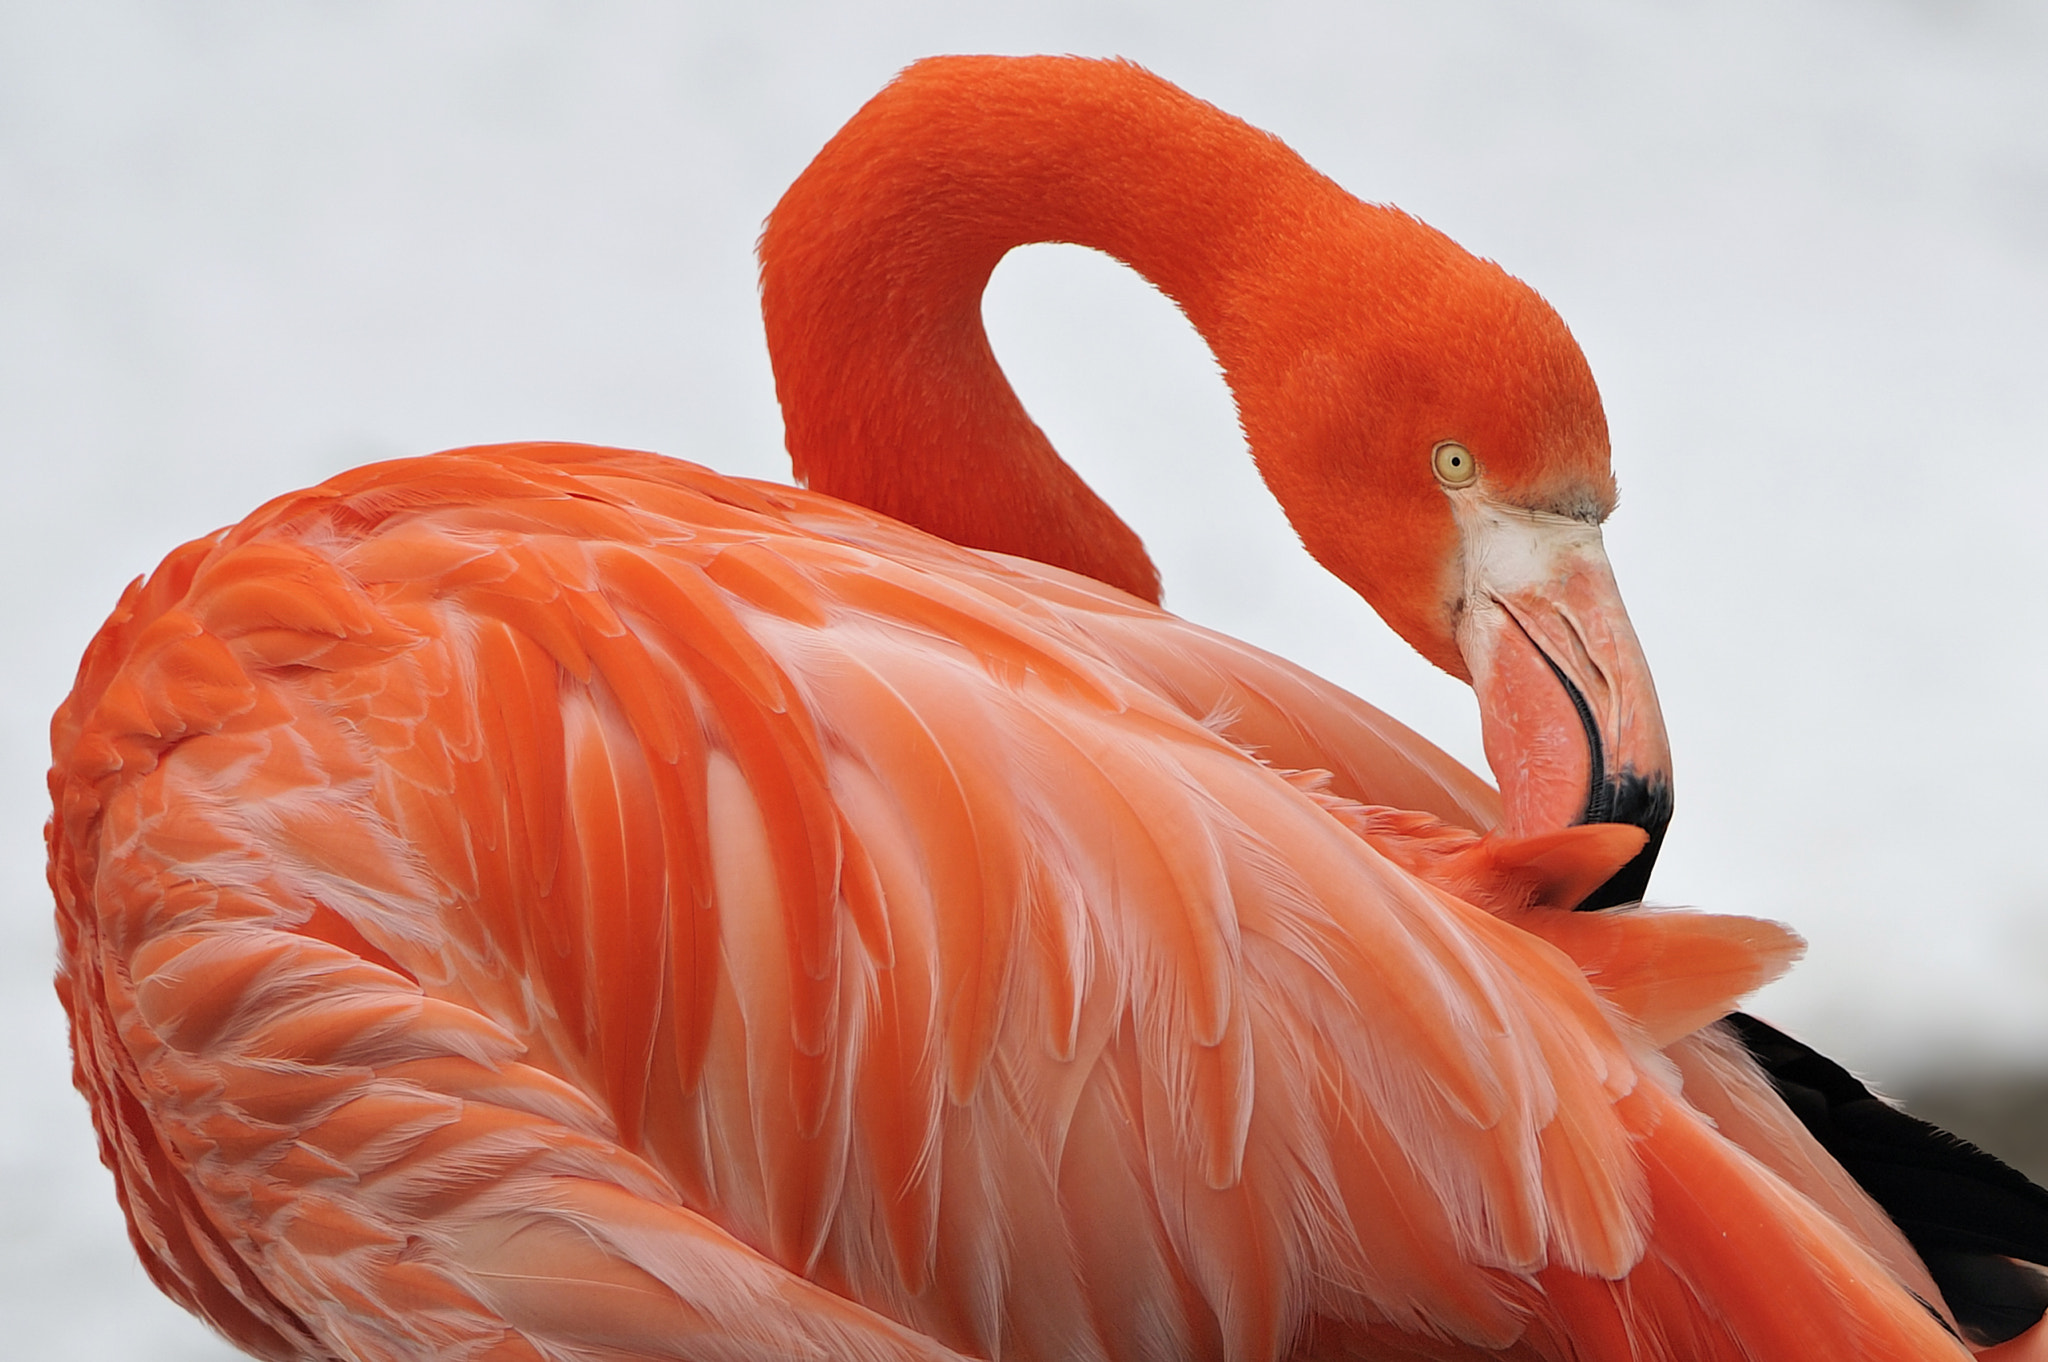 Photograph Red Flamingo by Josef Gelernter on 500px